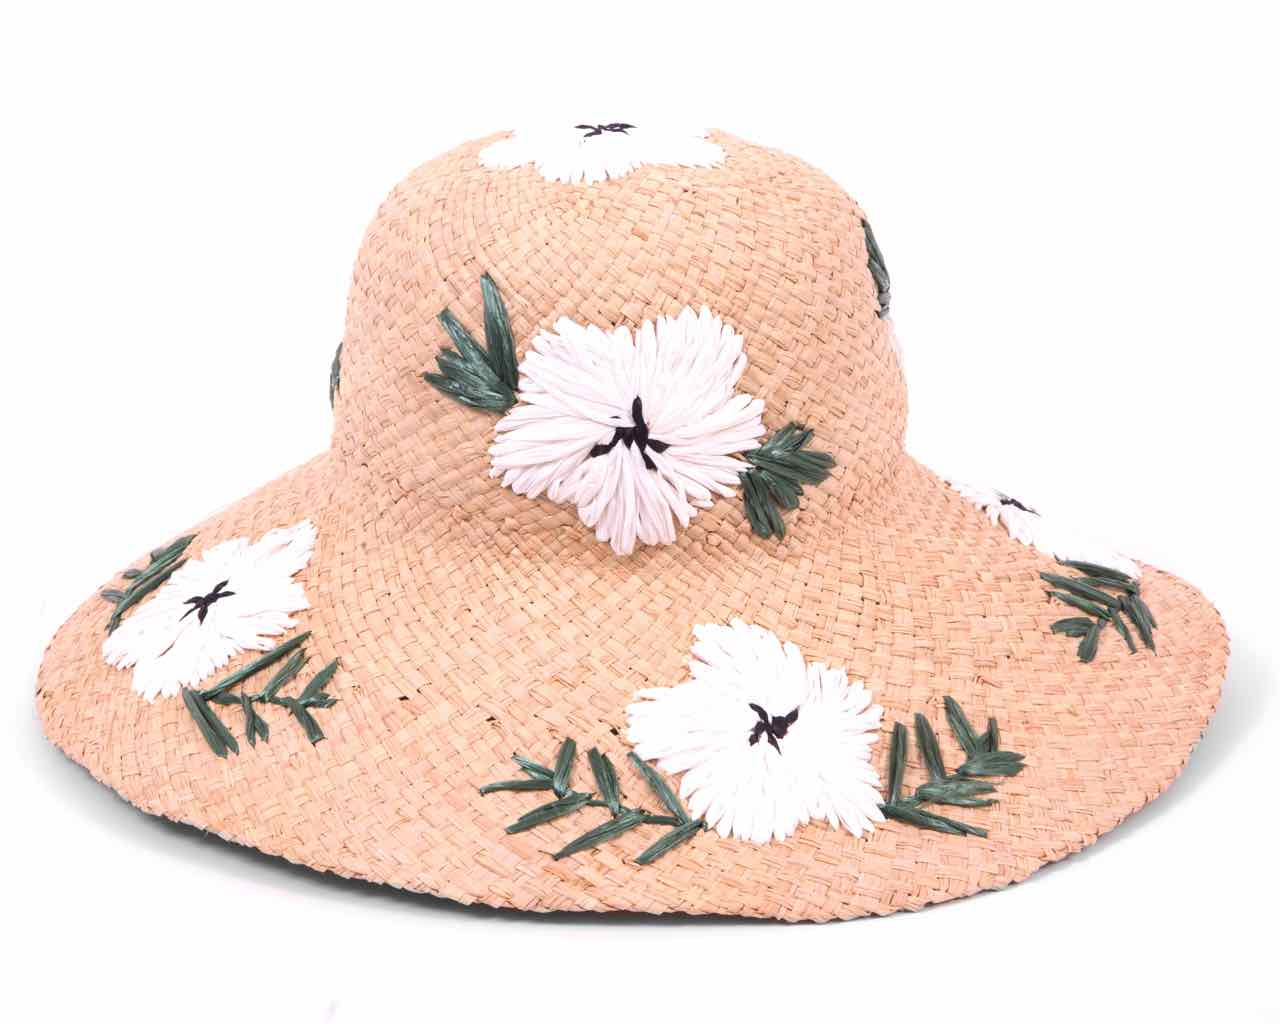 cb428973ce8 Gottex Beach Hat with White Flowers